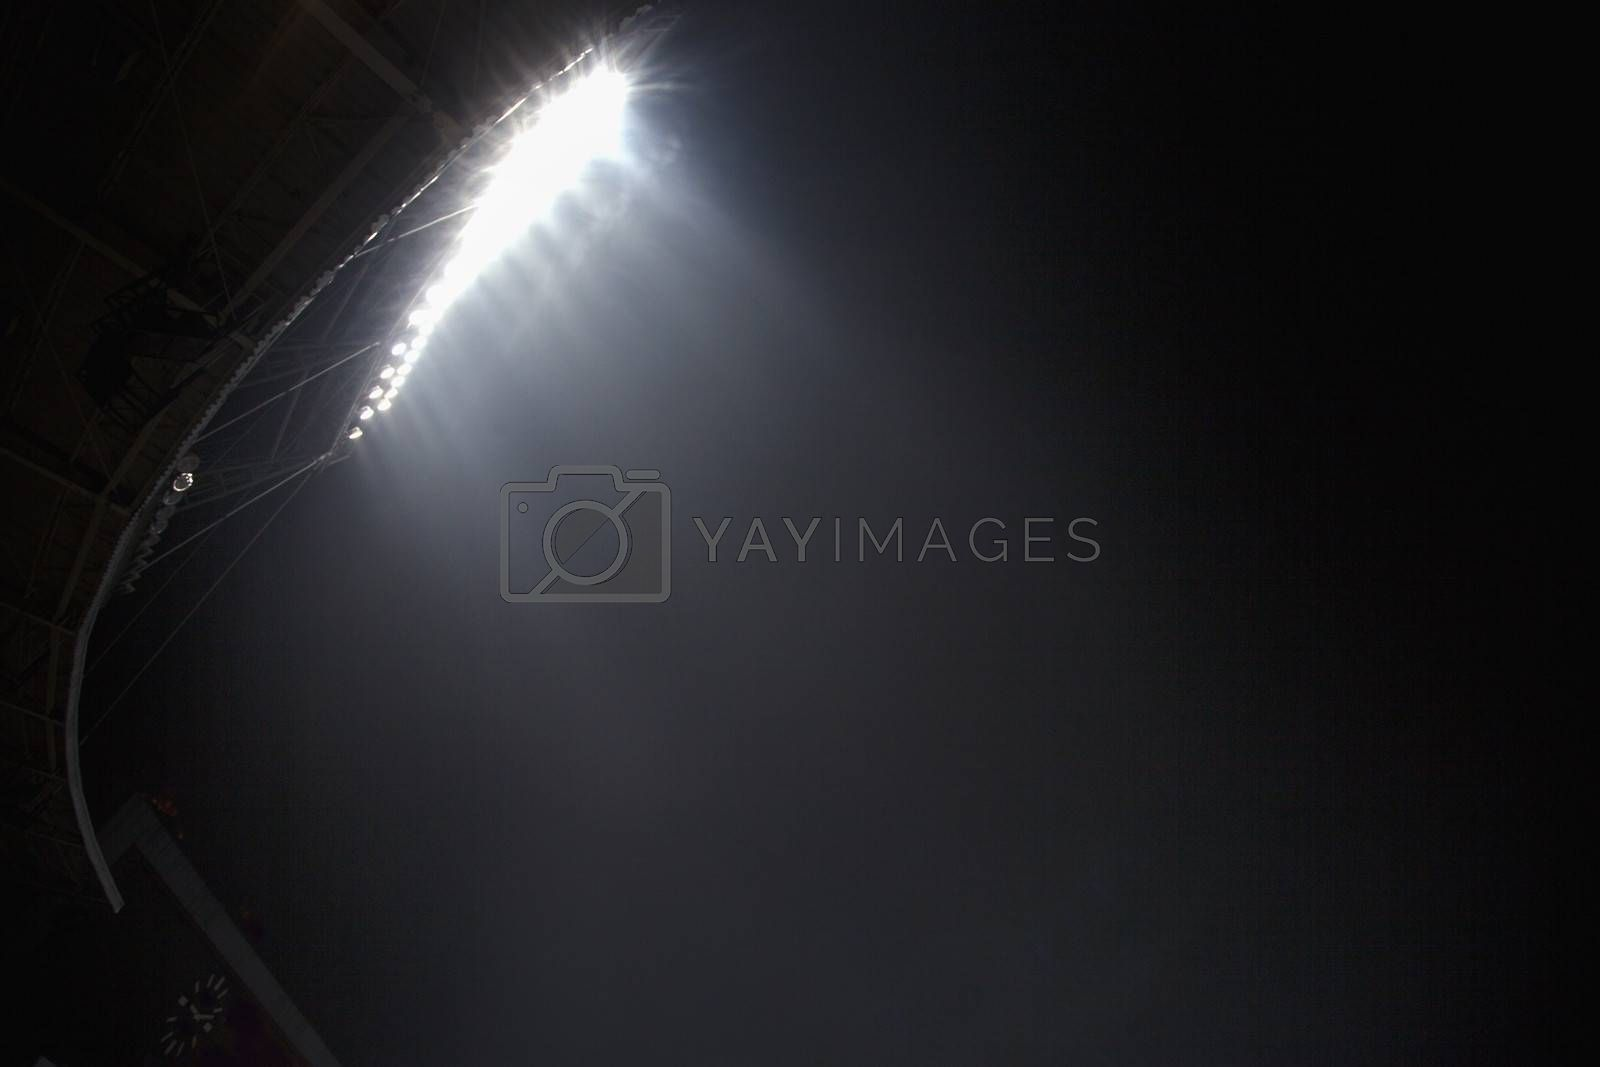 Stadium floodlights at night time, Beijing, China by XiXinXing